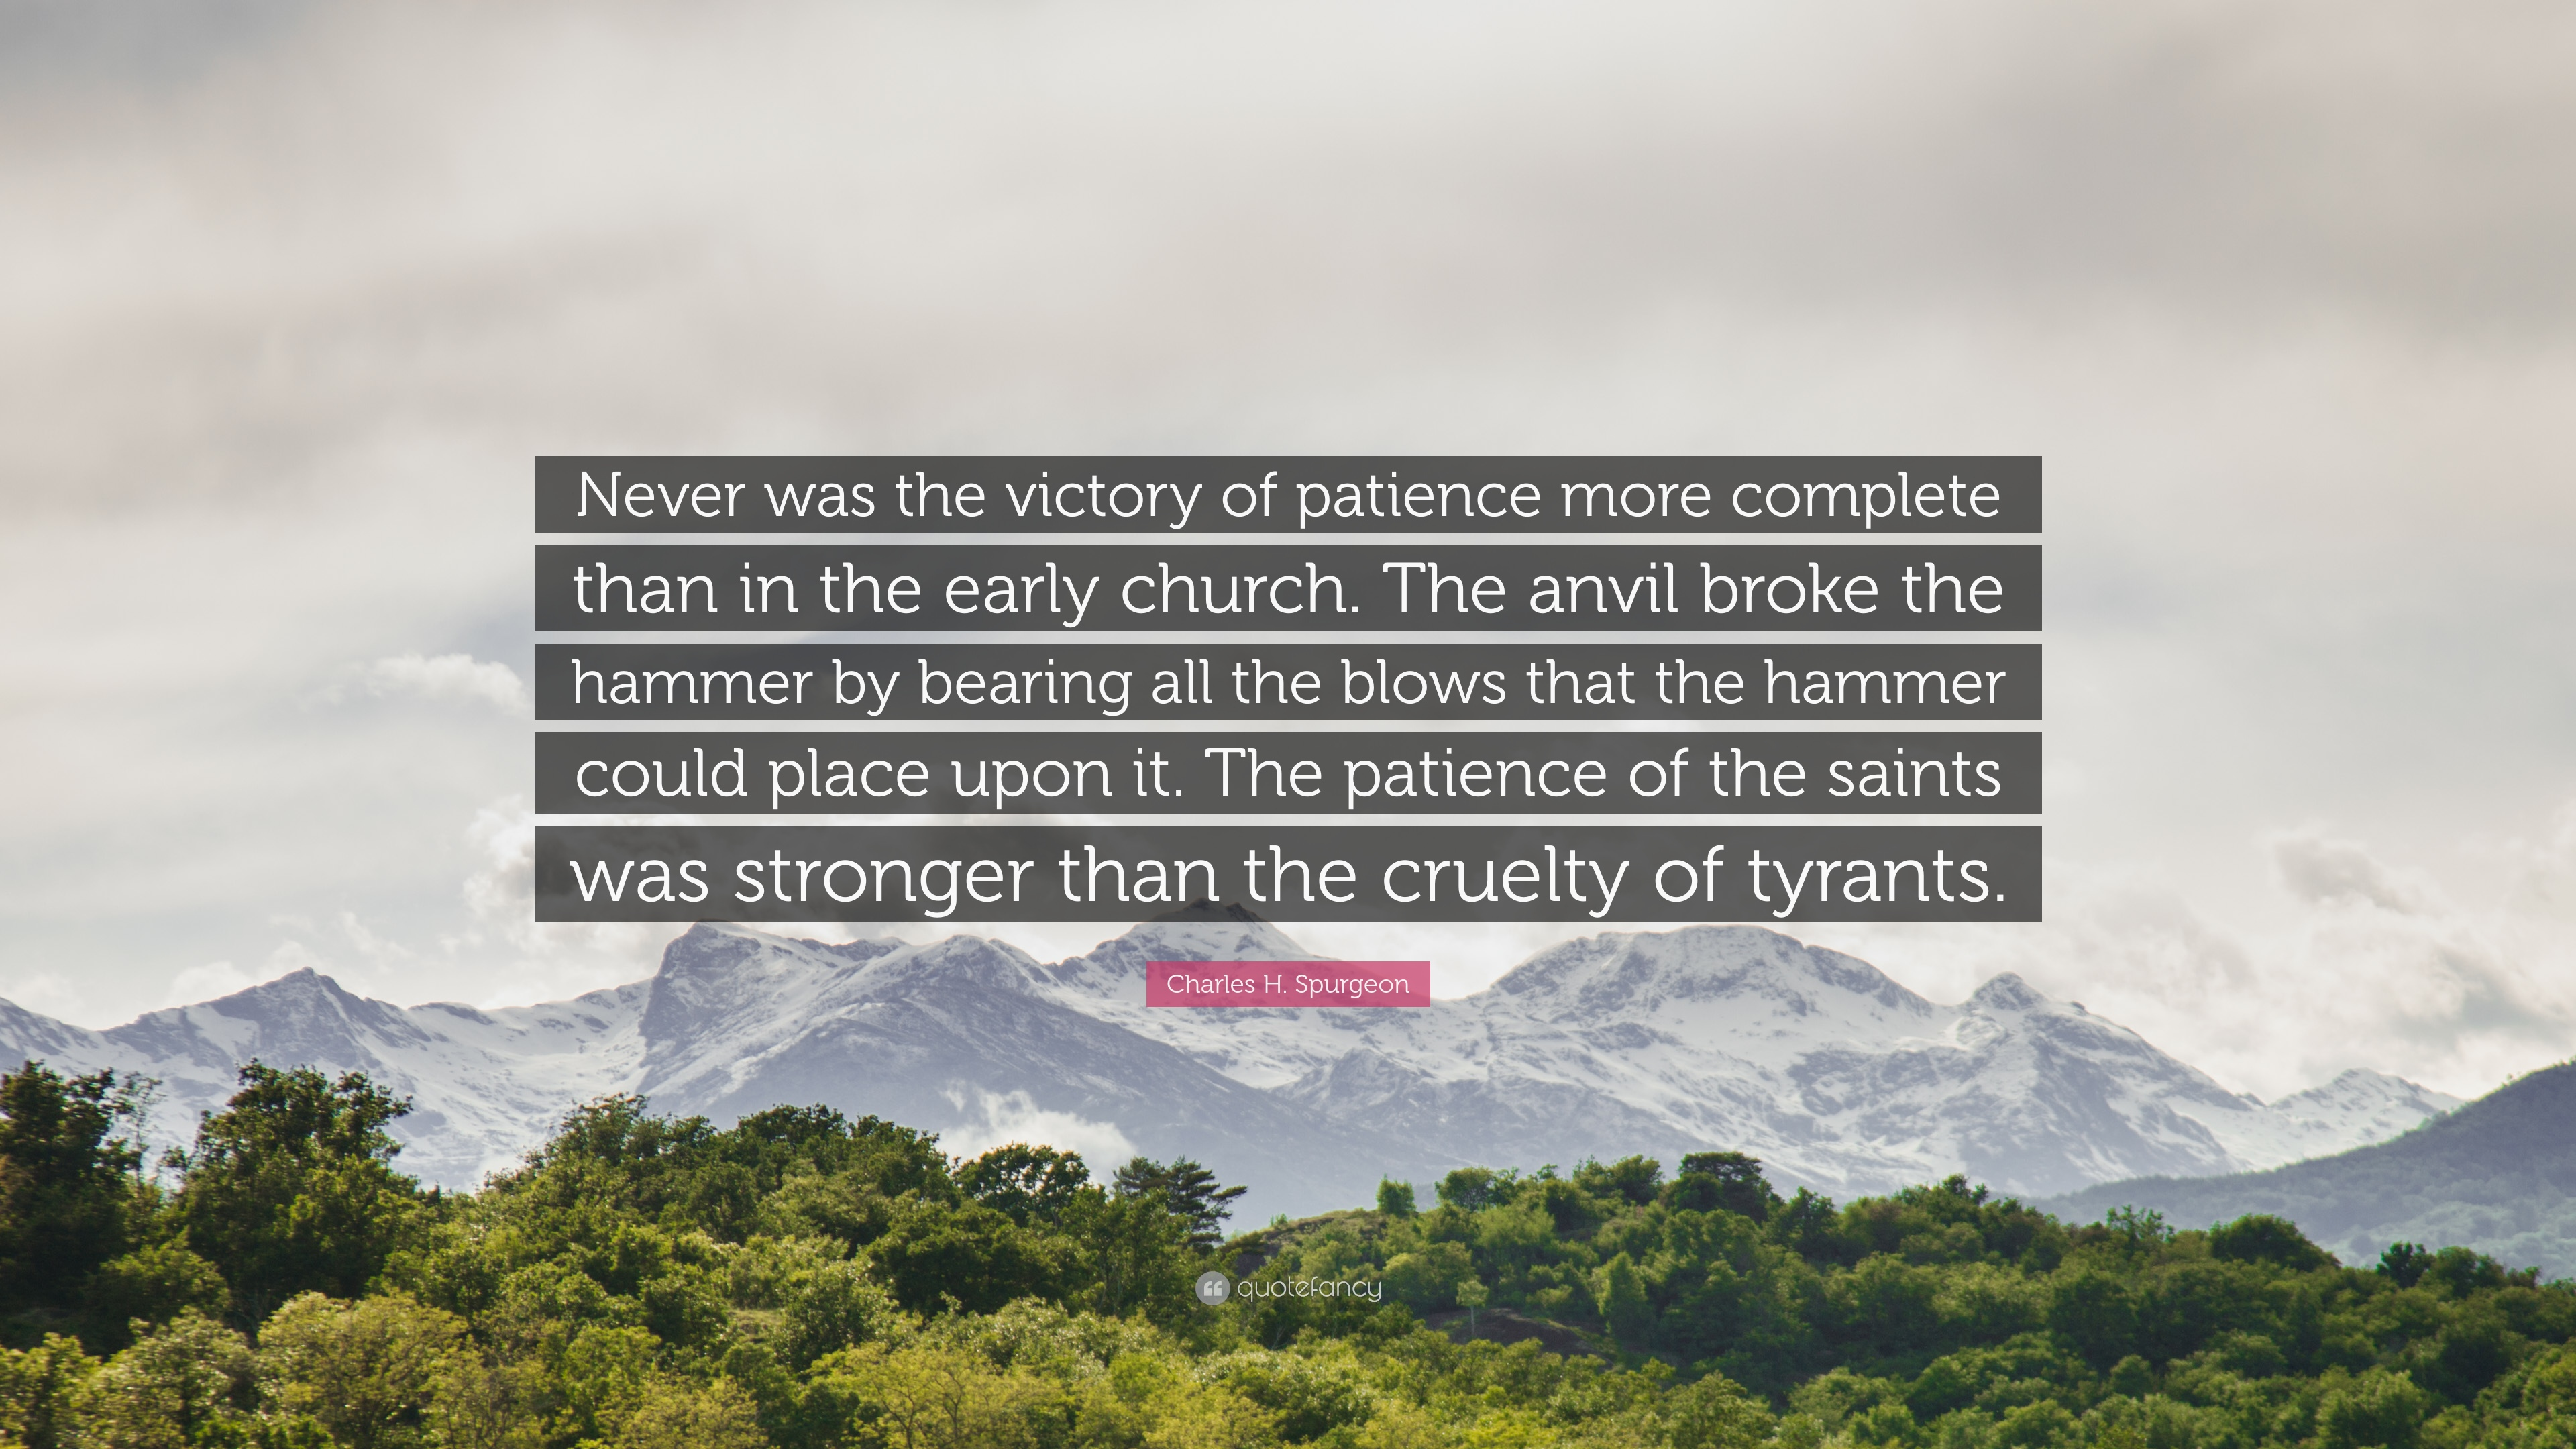 Charles H Spurgeon Quote Never Was The Victory Of Patience More